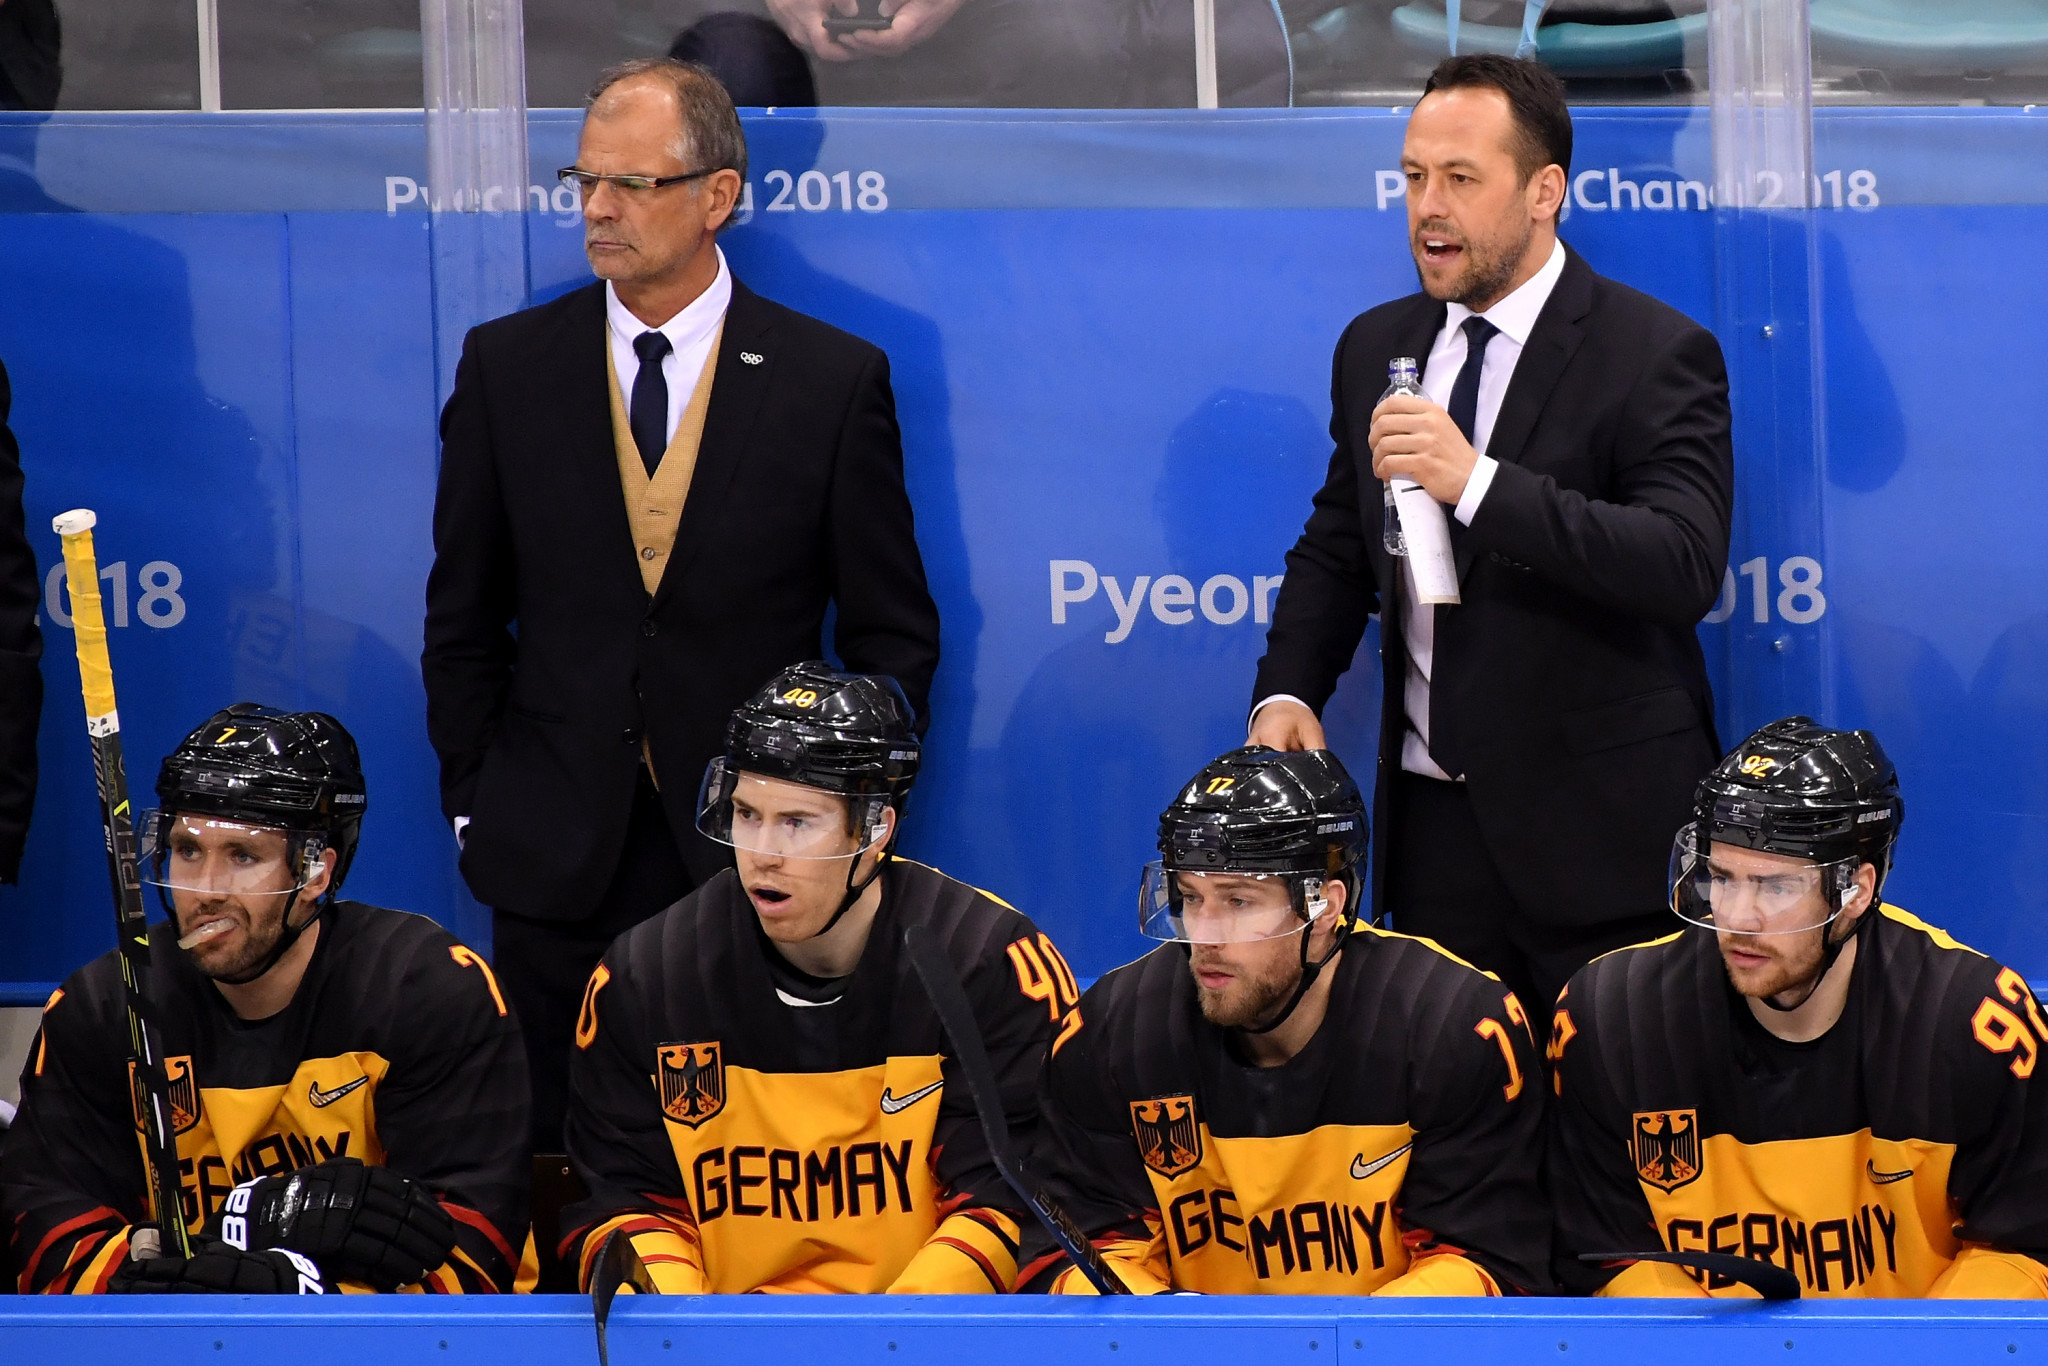 Former German head coach Marco Sturm, top right, has supported Franz Reindl's IIHF Presidential campaign ©Getty Images